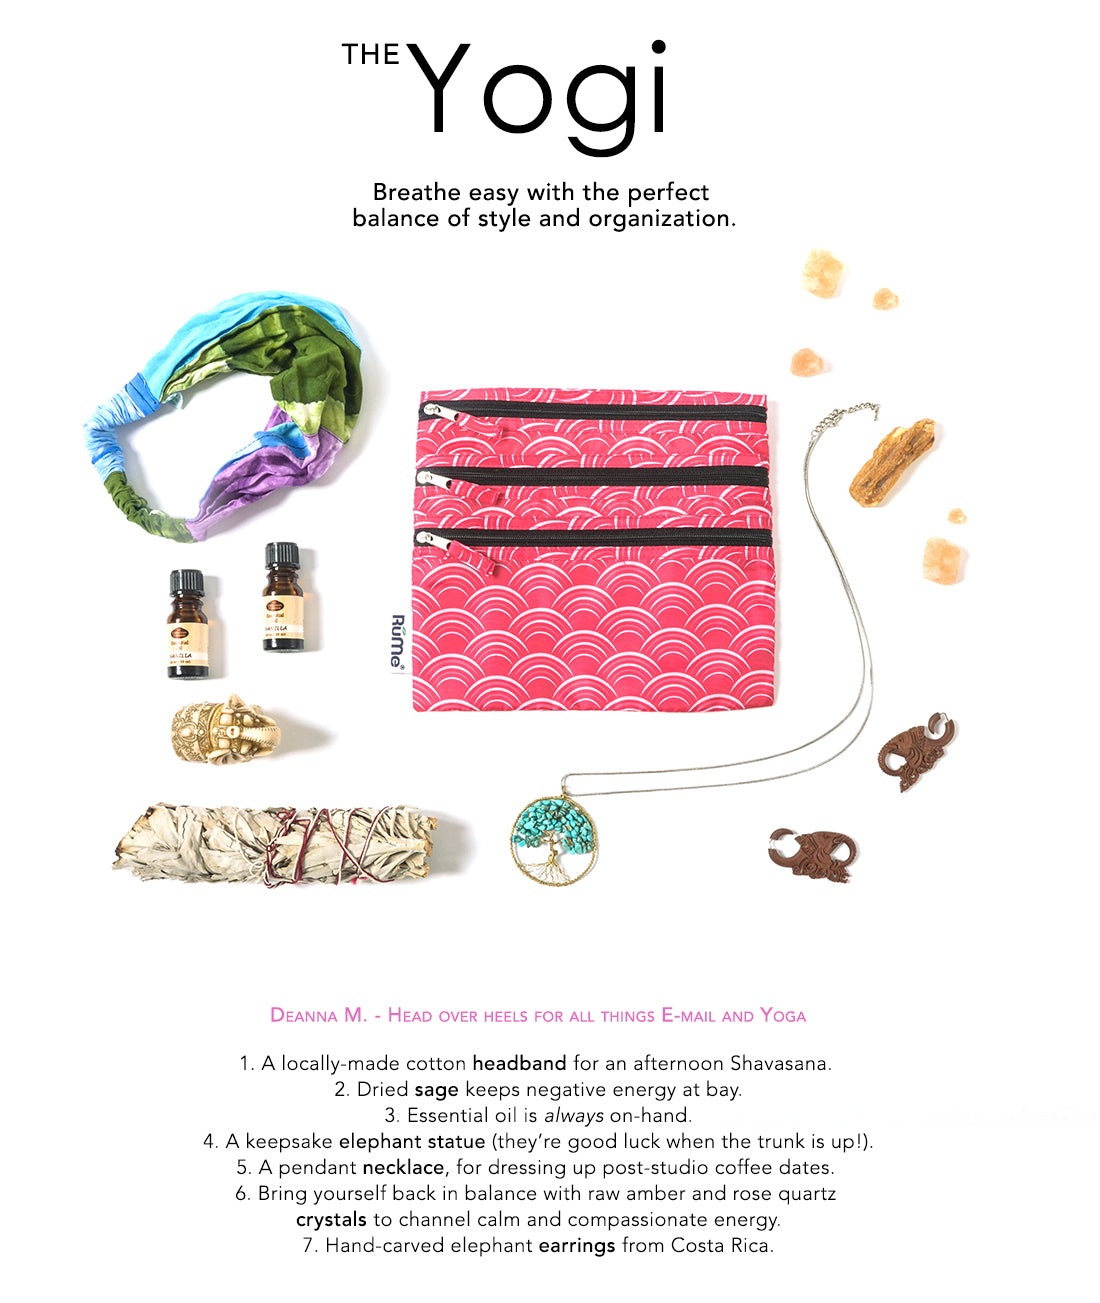 The Yogi | Breathe easy with the perfect balance of style and organization